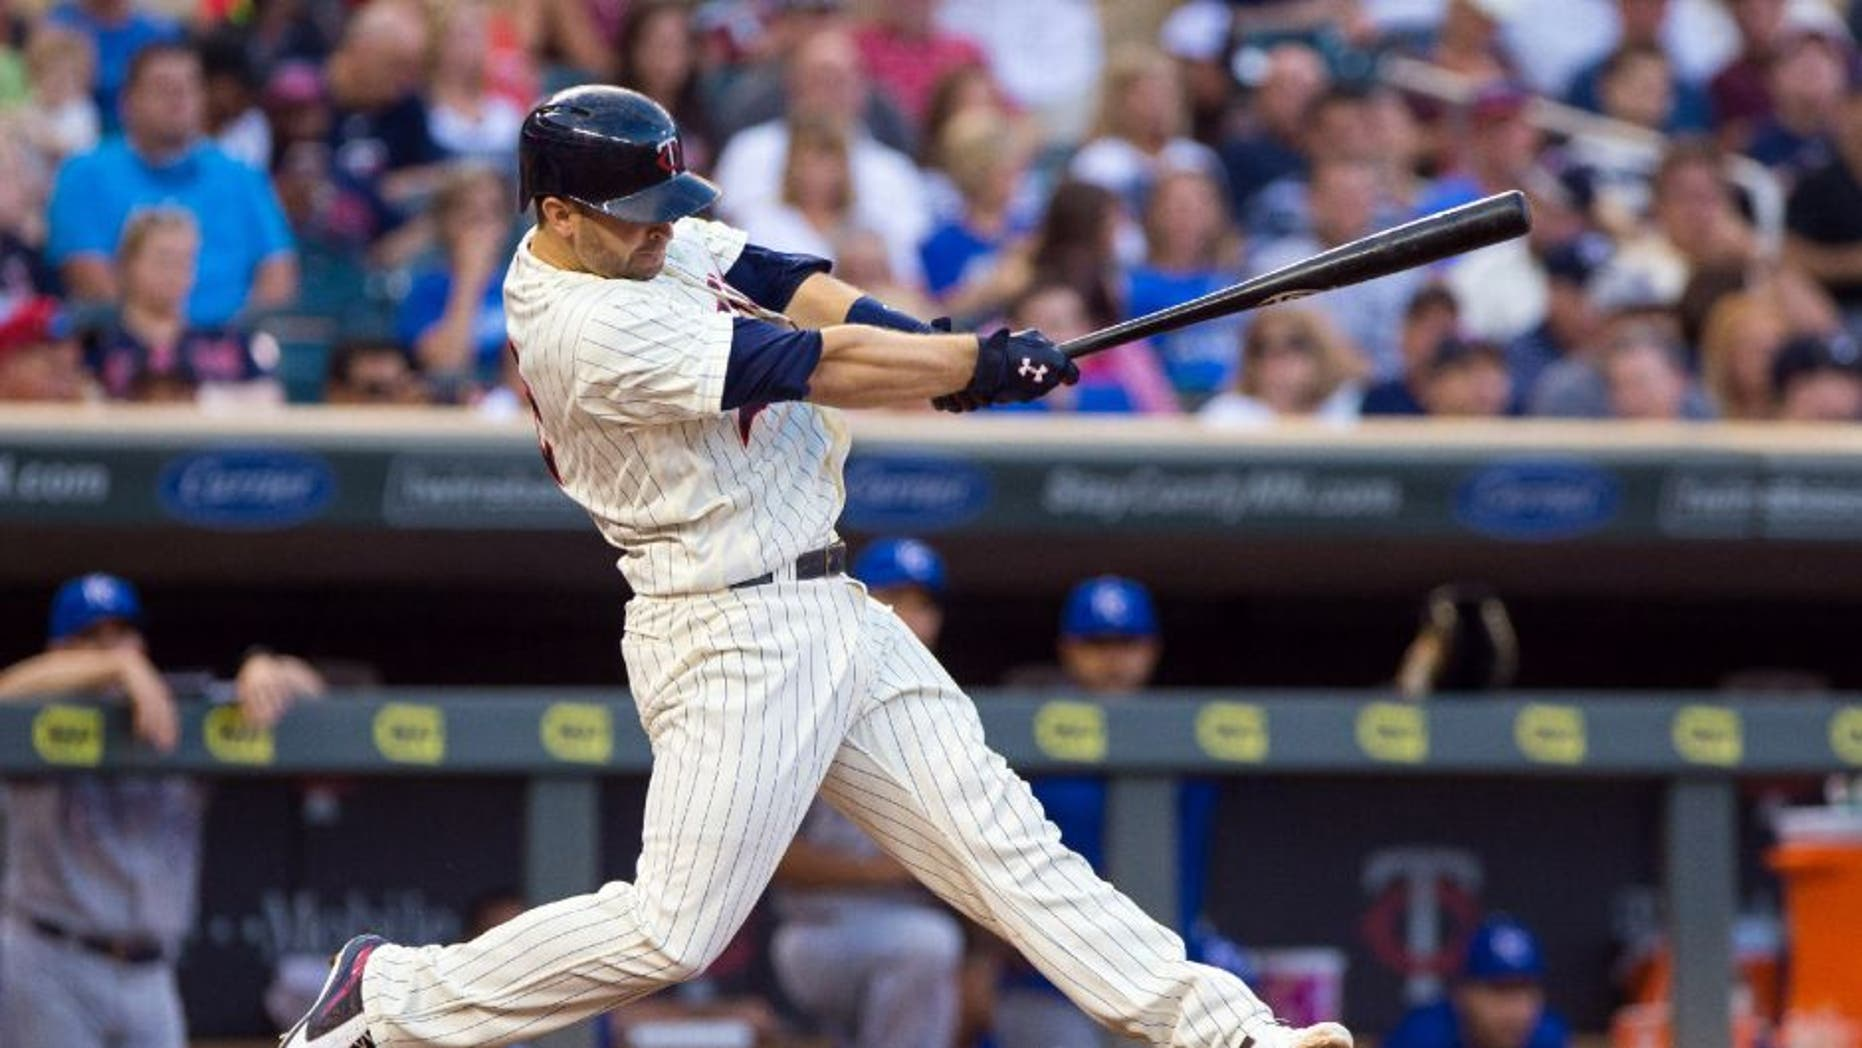 Minnesota Twins second baseman Brian Dozier hits his 100th career home run in the sixth inning against the Kansas City Royals on Saturday, Aug. 12, 2016, in Minneapolis.